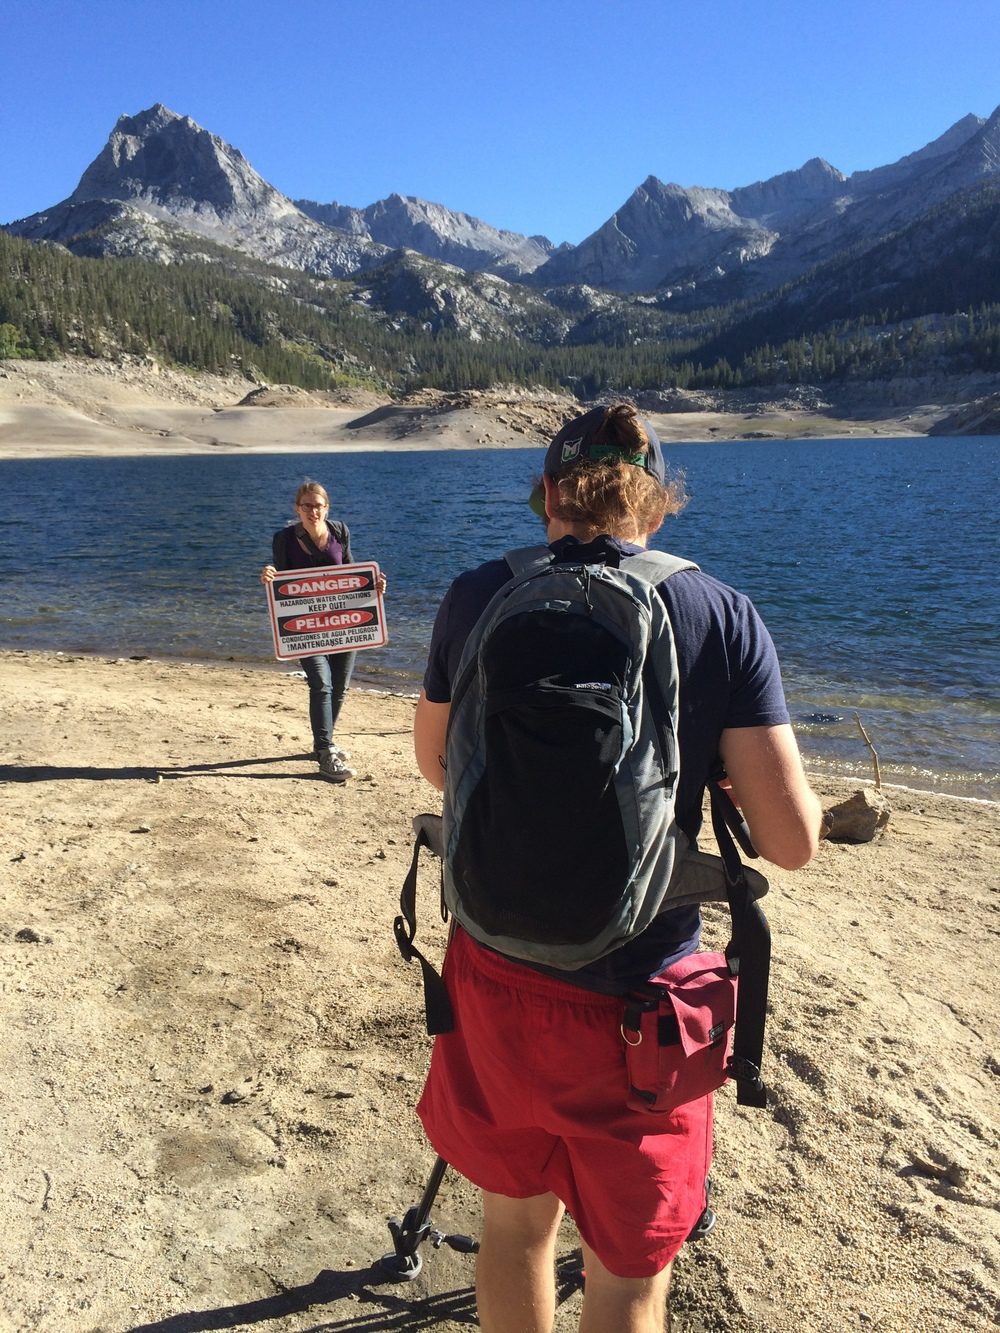 SAM_HOLDING_SIGN_SECOND_LAKE.JPG